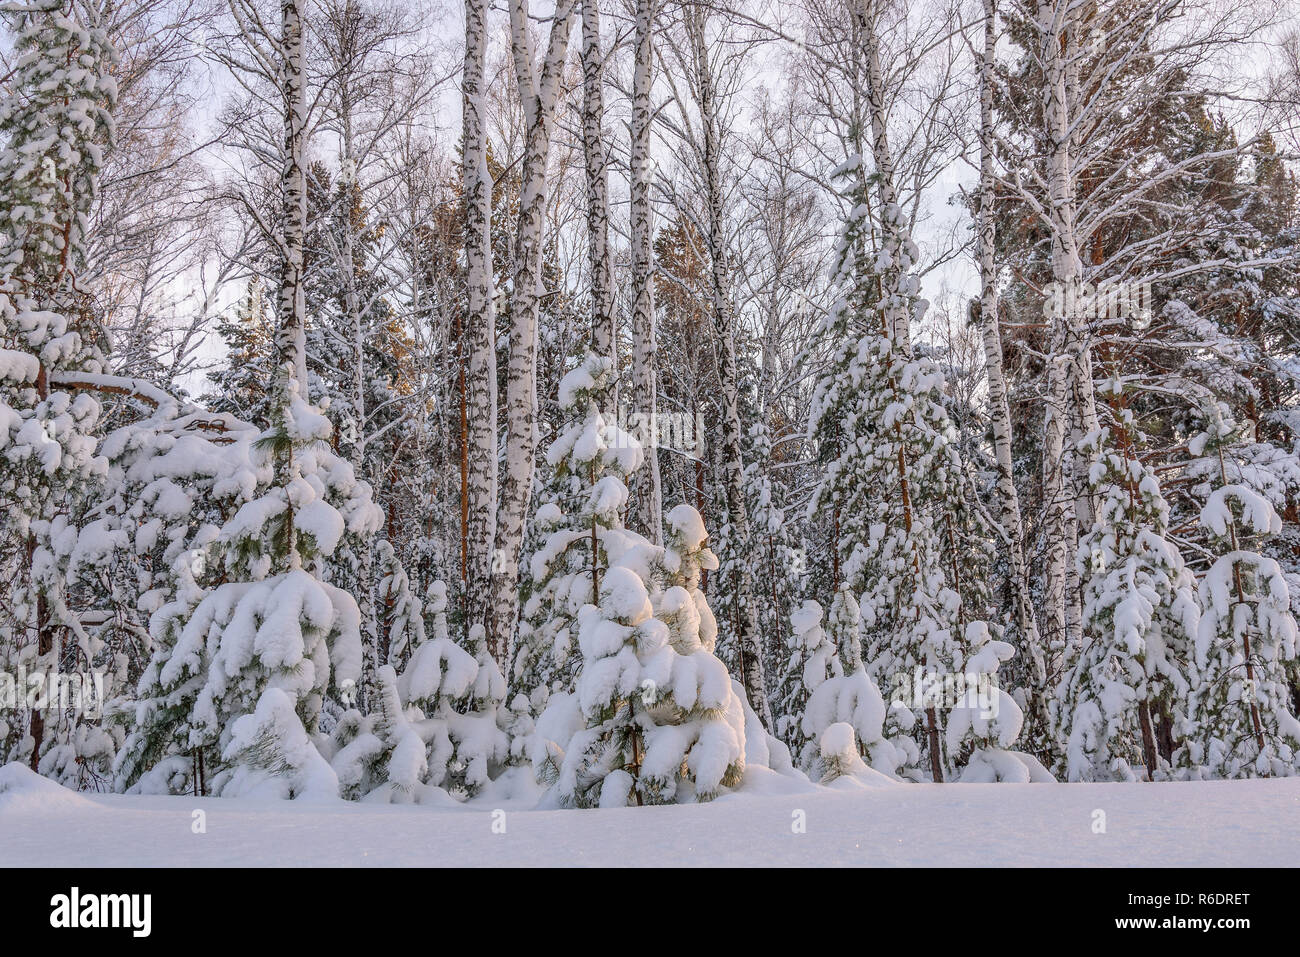 Beautiful winter forest with spruces, birches, small pines with snow on the branches and snowdrifts - Stock Image